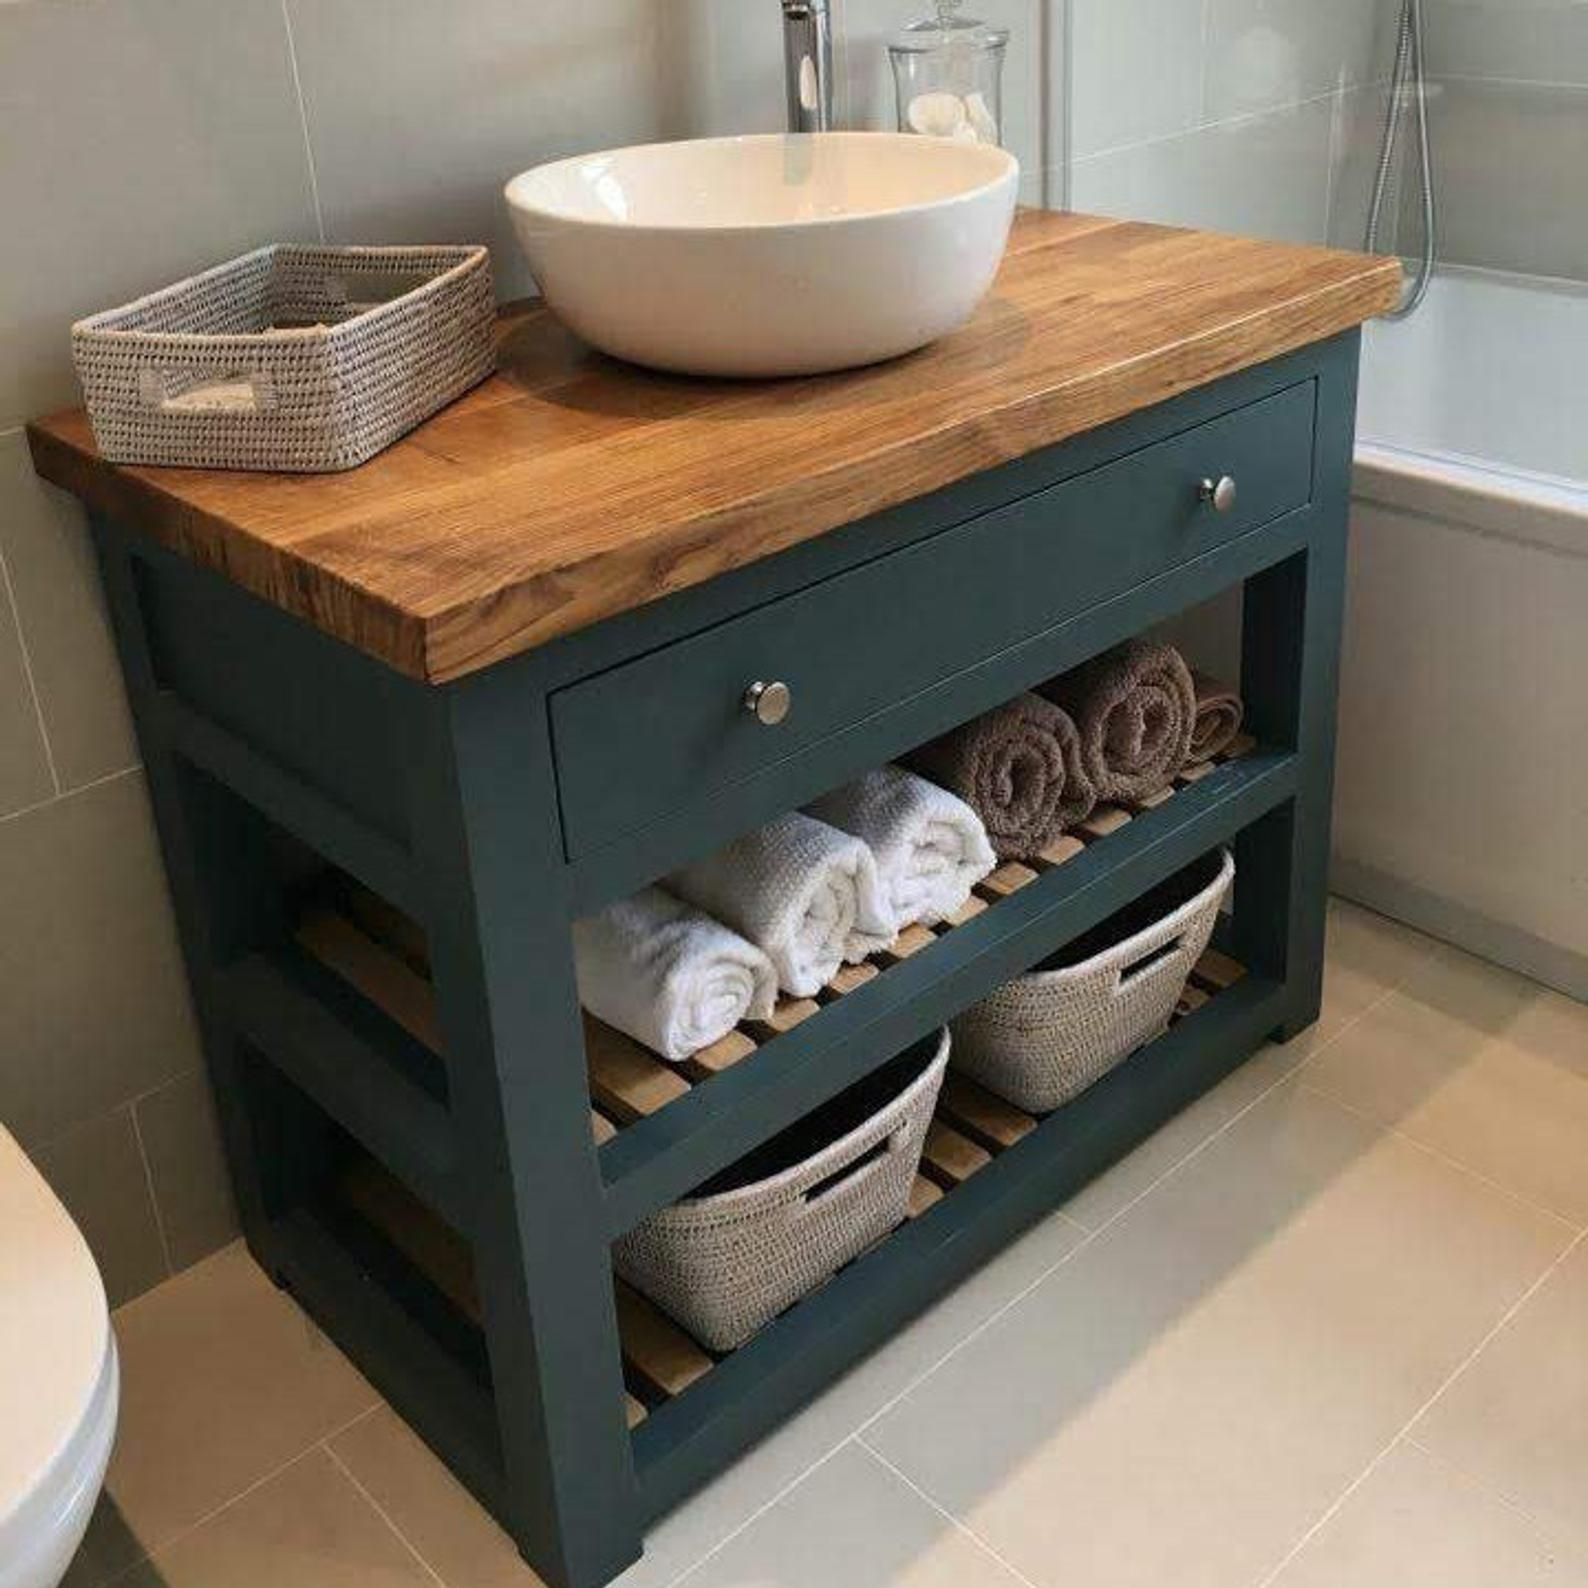 Bespoke Bathroom Vanity Unit with a Solid Oak worktop. Made | Etsy ...